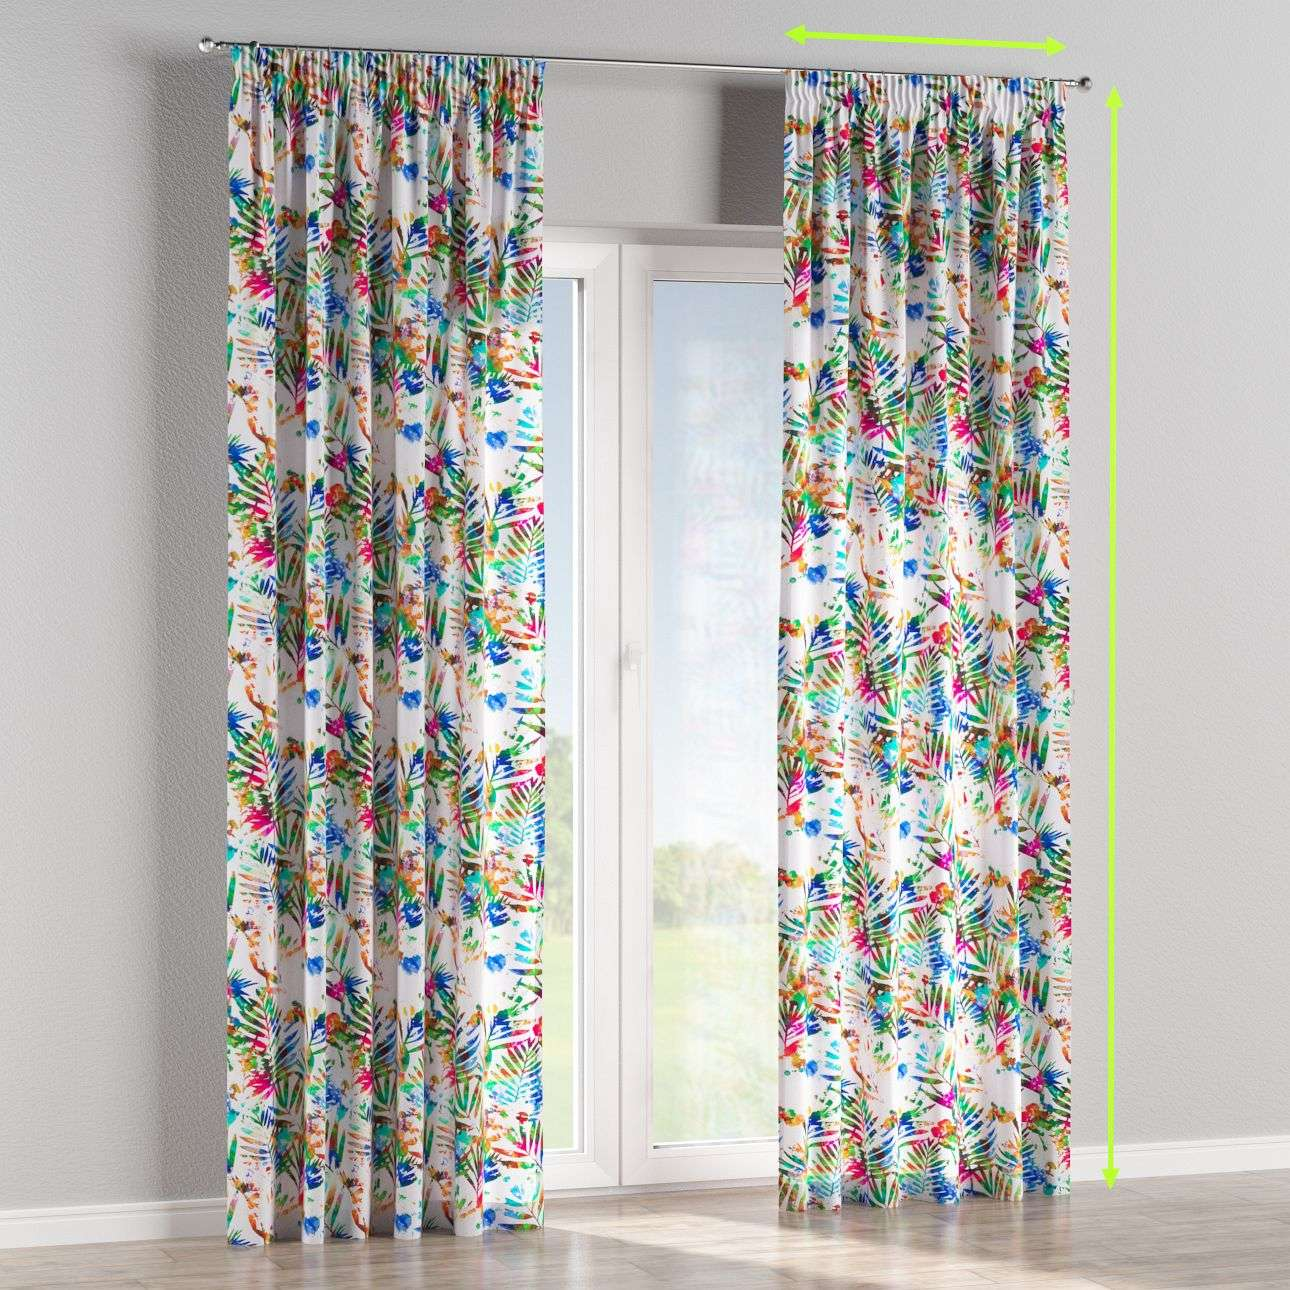 Pencil pleat curtains in collection New Art, fabric: 140-22